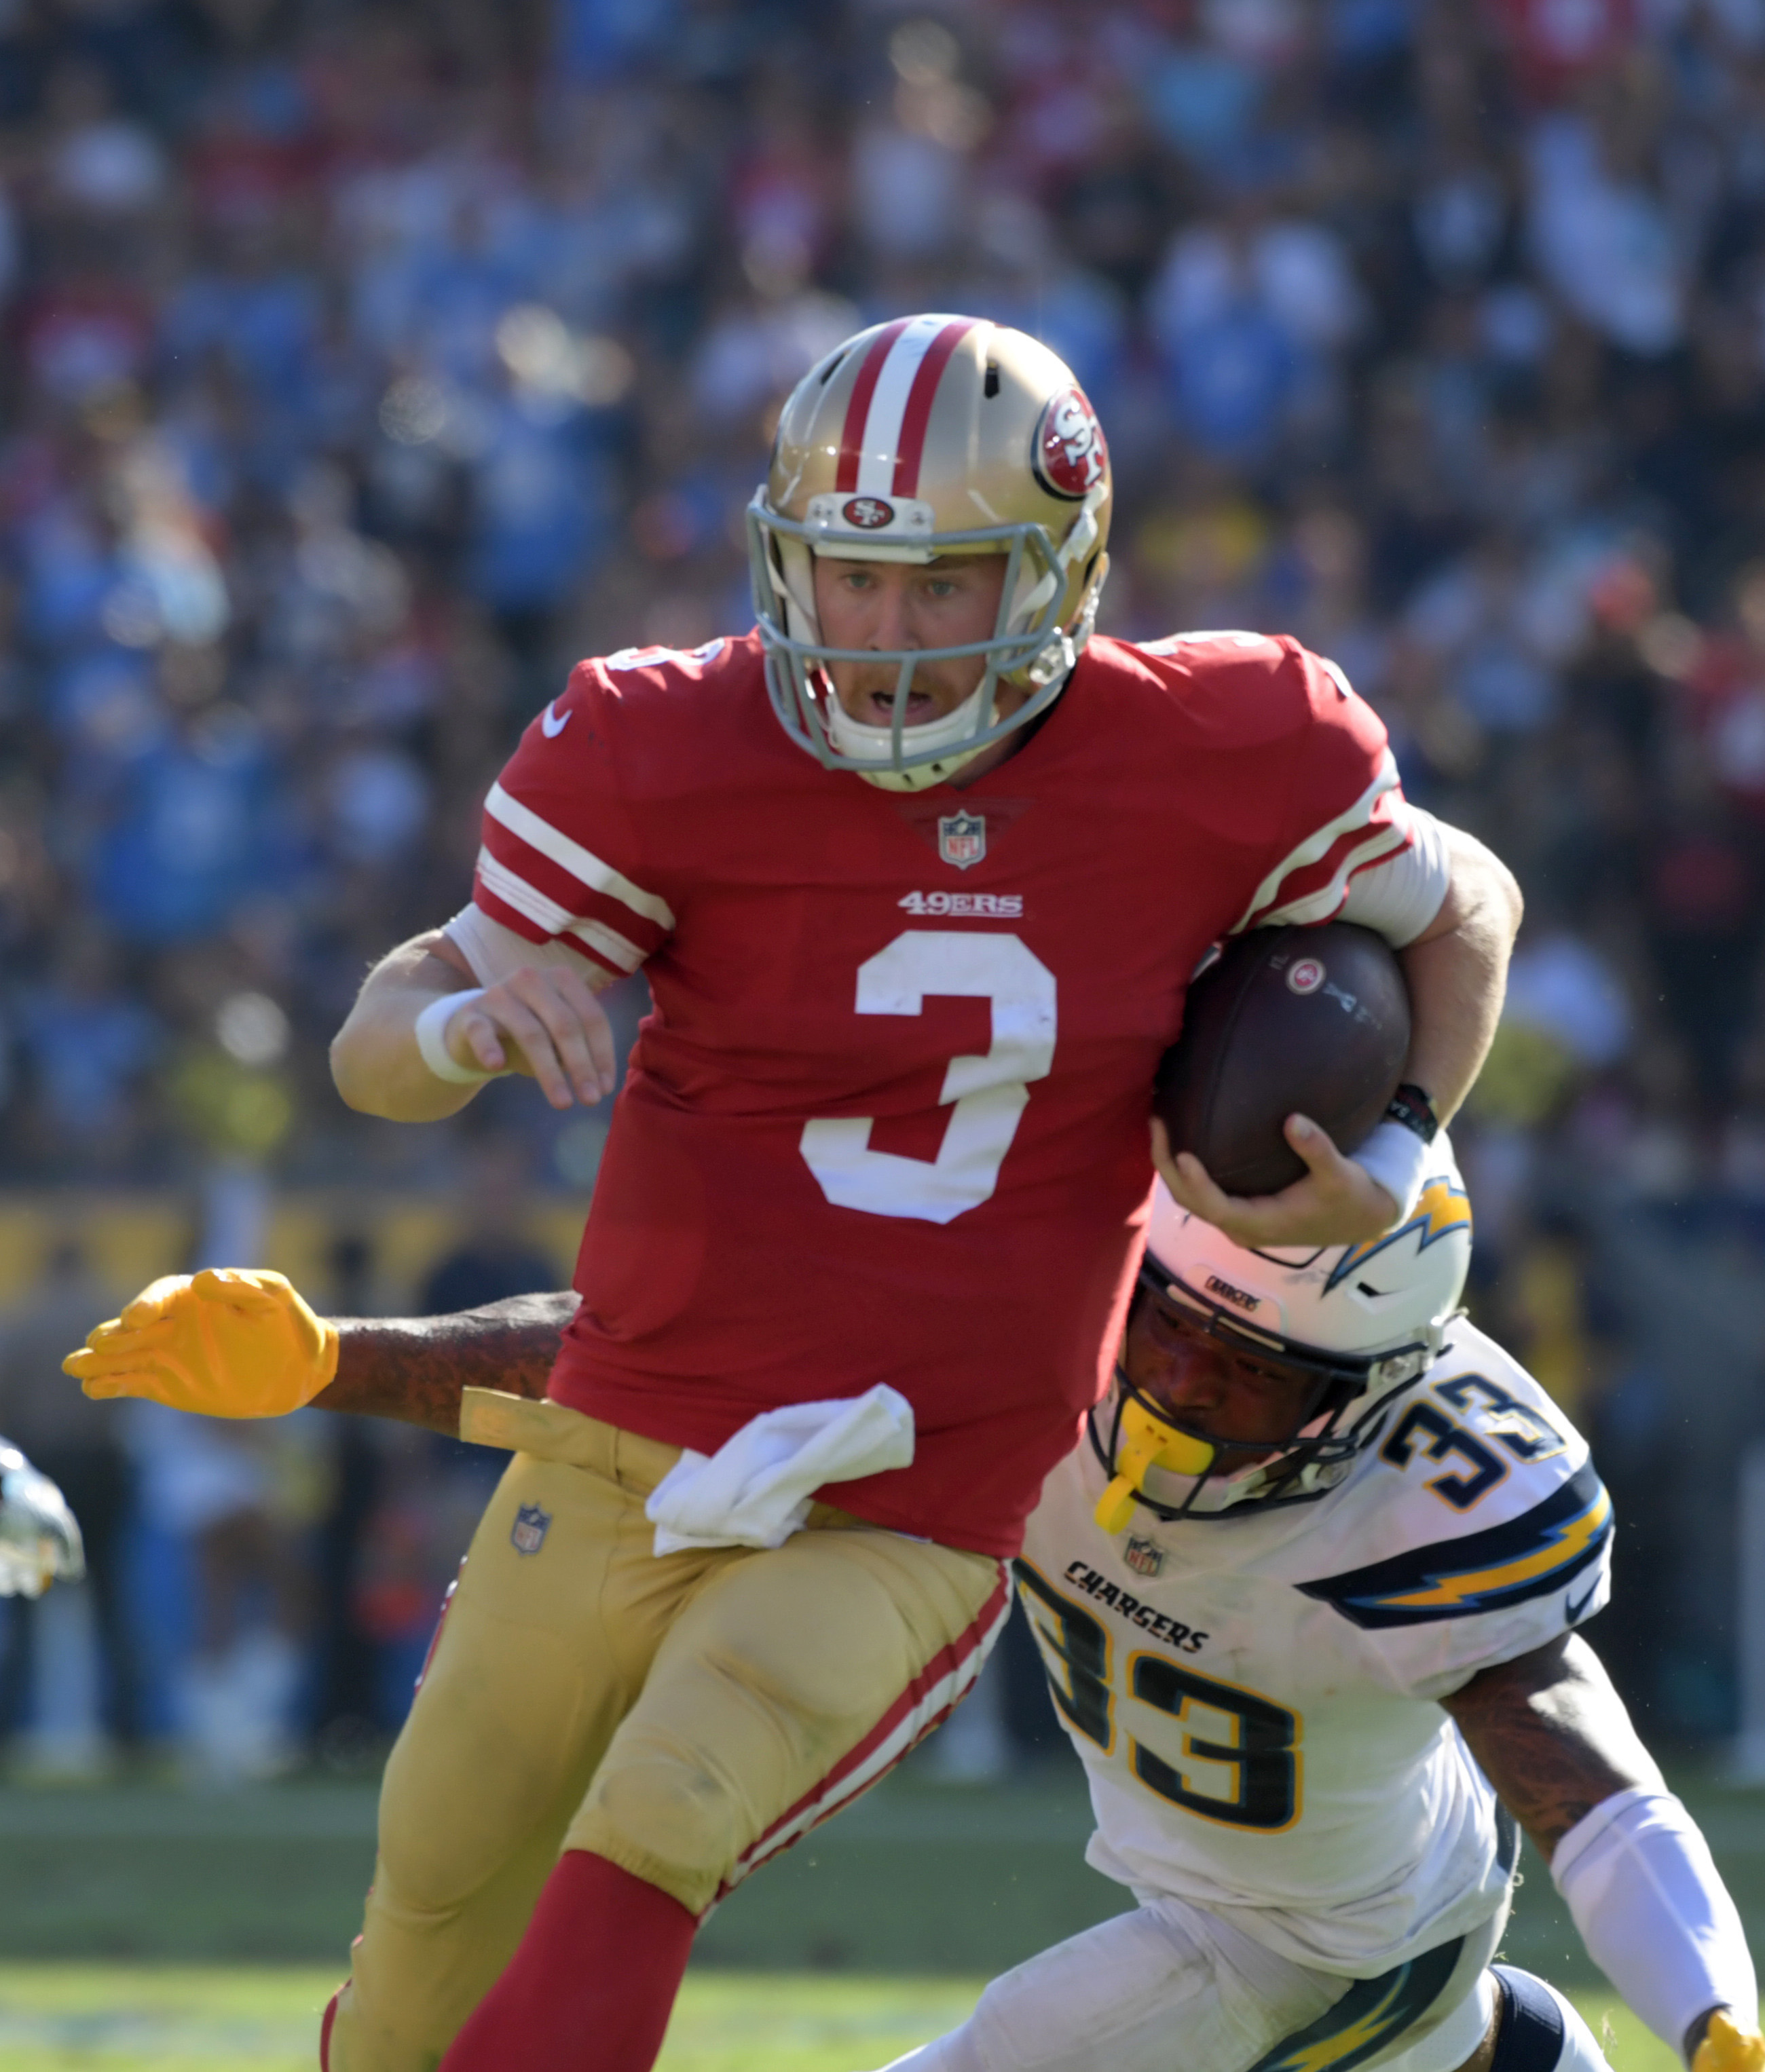 49ers vs. Chargers 84ad91149